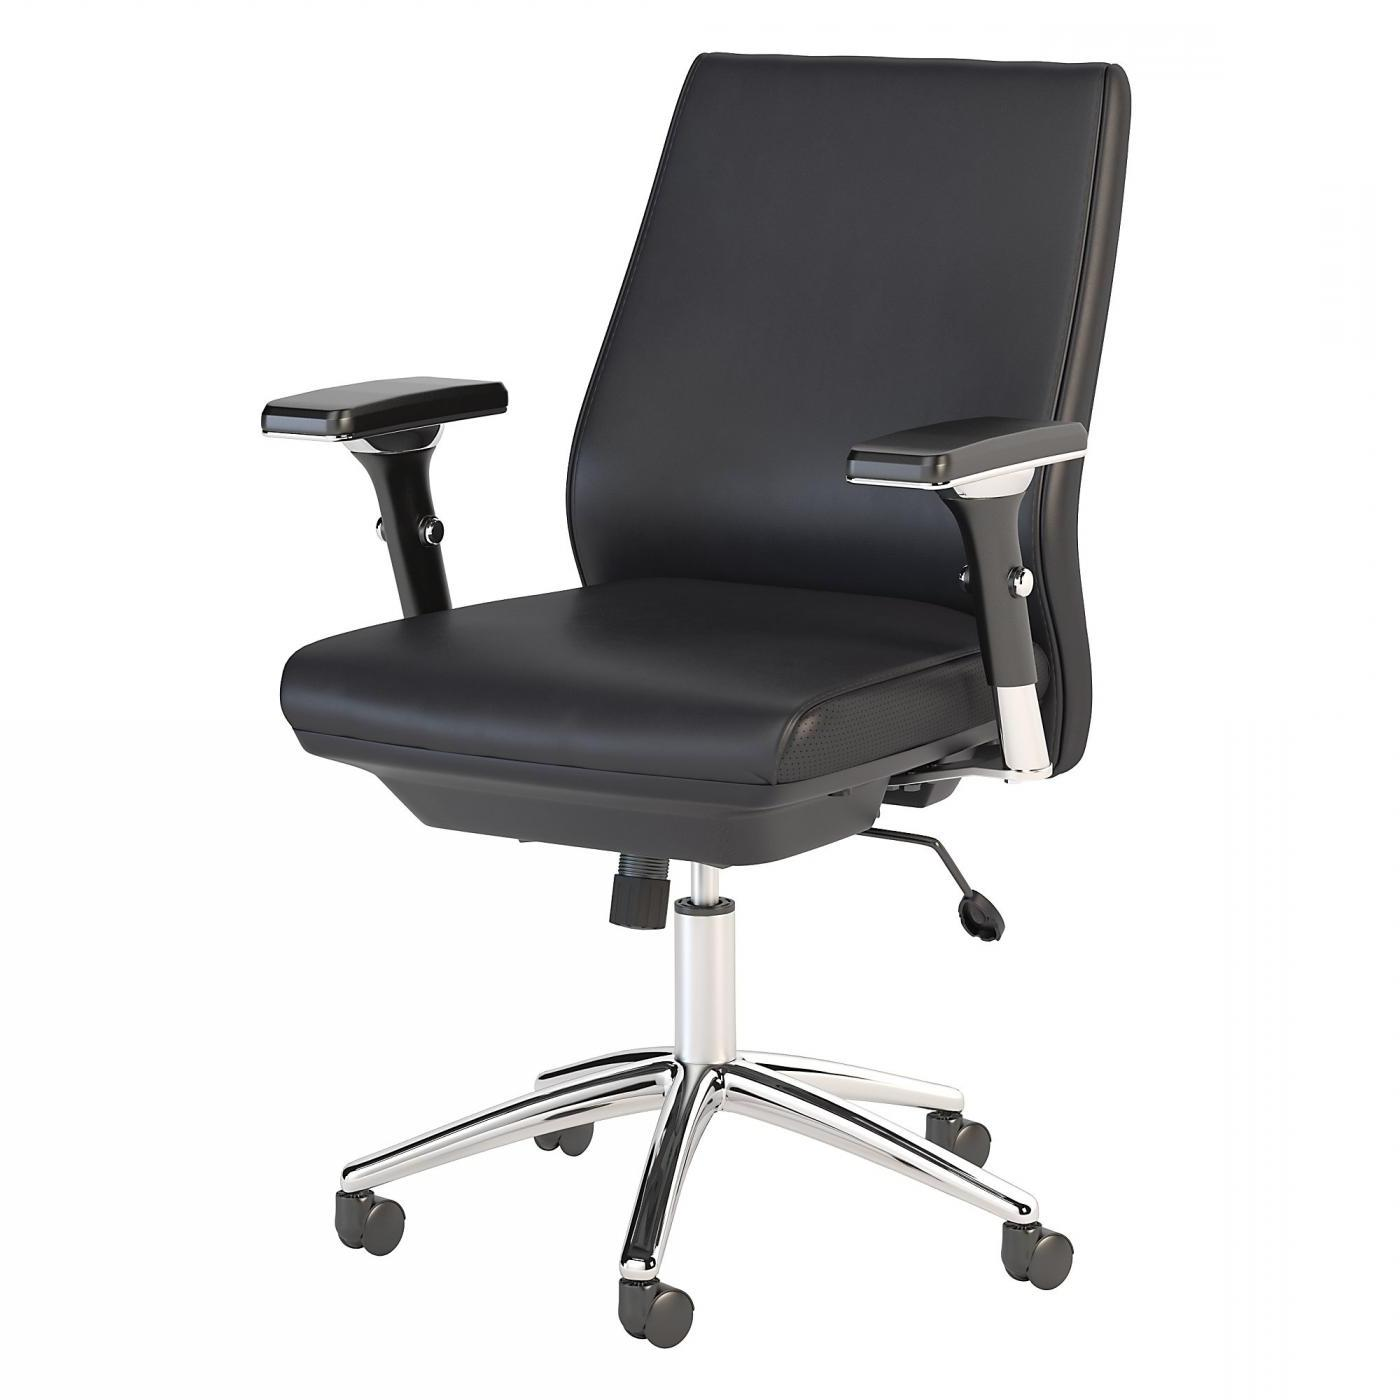 <font color=#c60><b>BUSH BUSINESS FURNITURE METROPOLIS MID BACK LEATHER EXECUTIVE OFFICE CHAIR. FREE SHIPPING</font></b> </font></b></font></b>